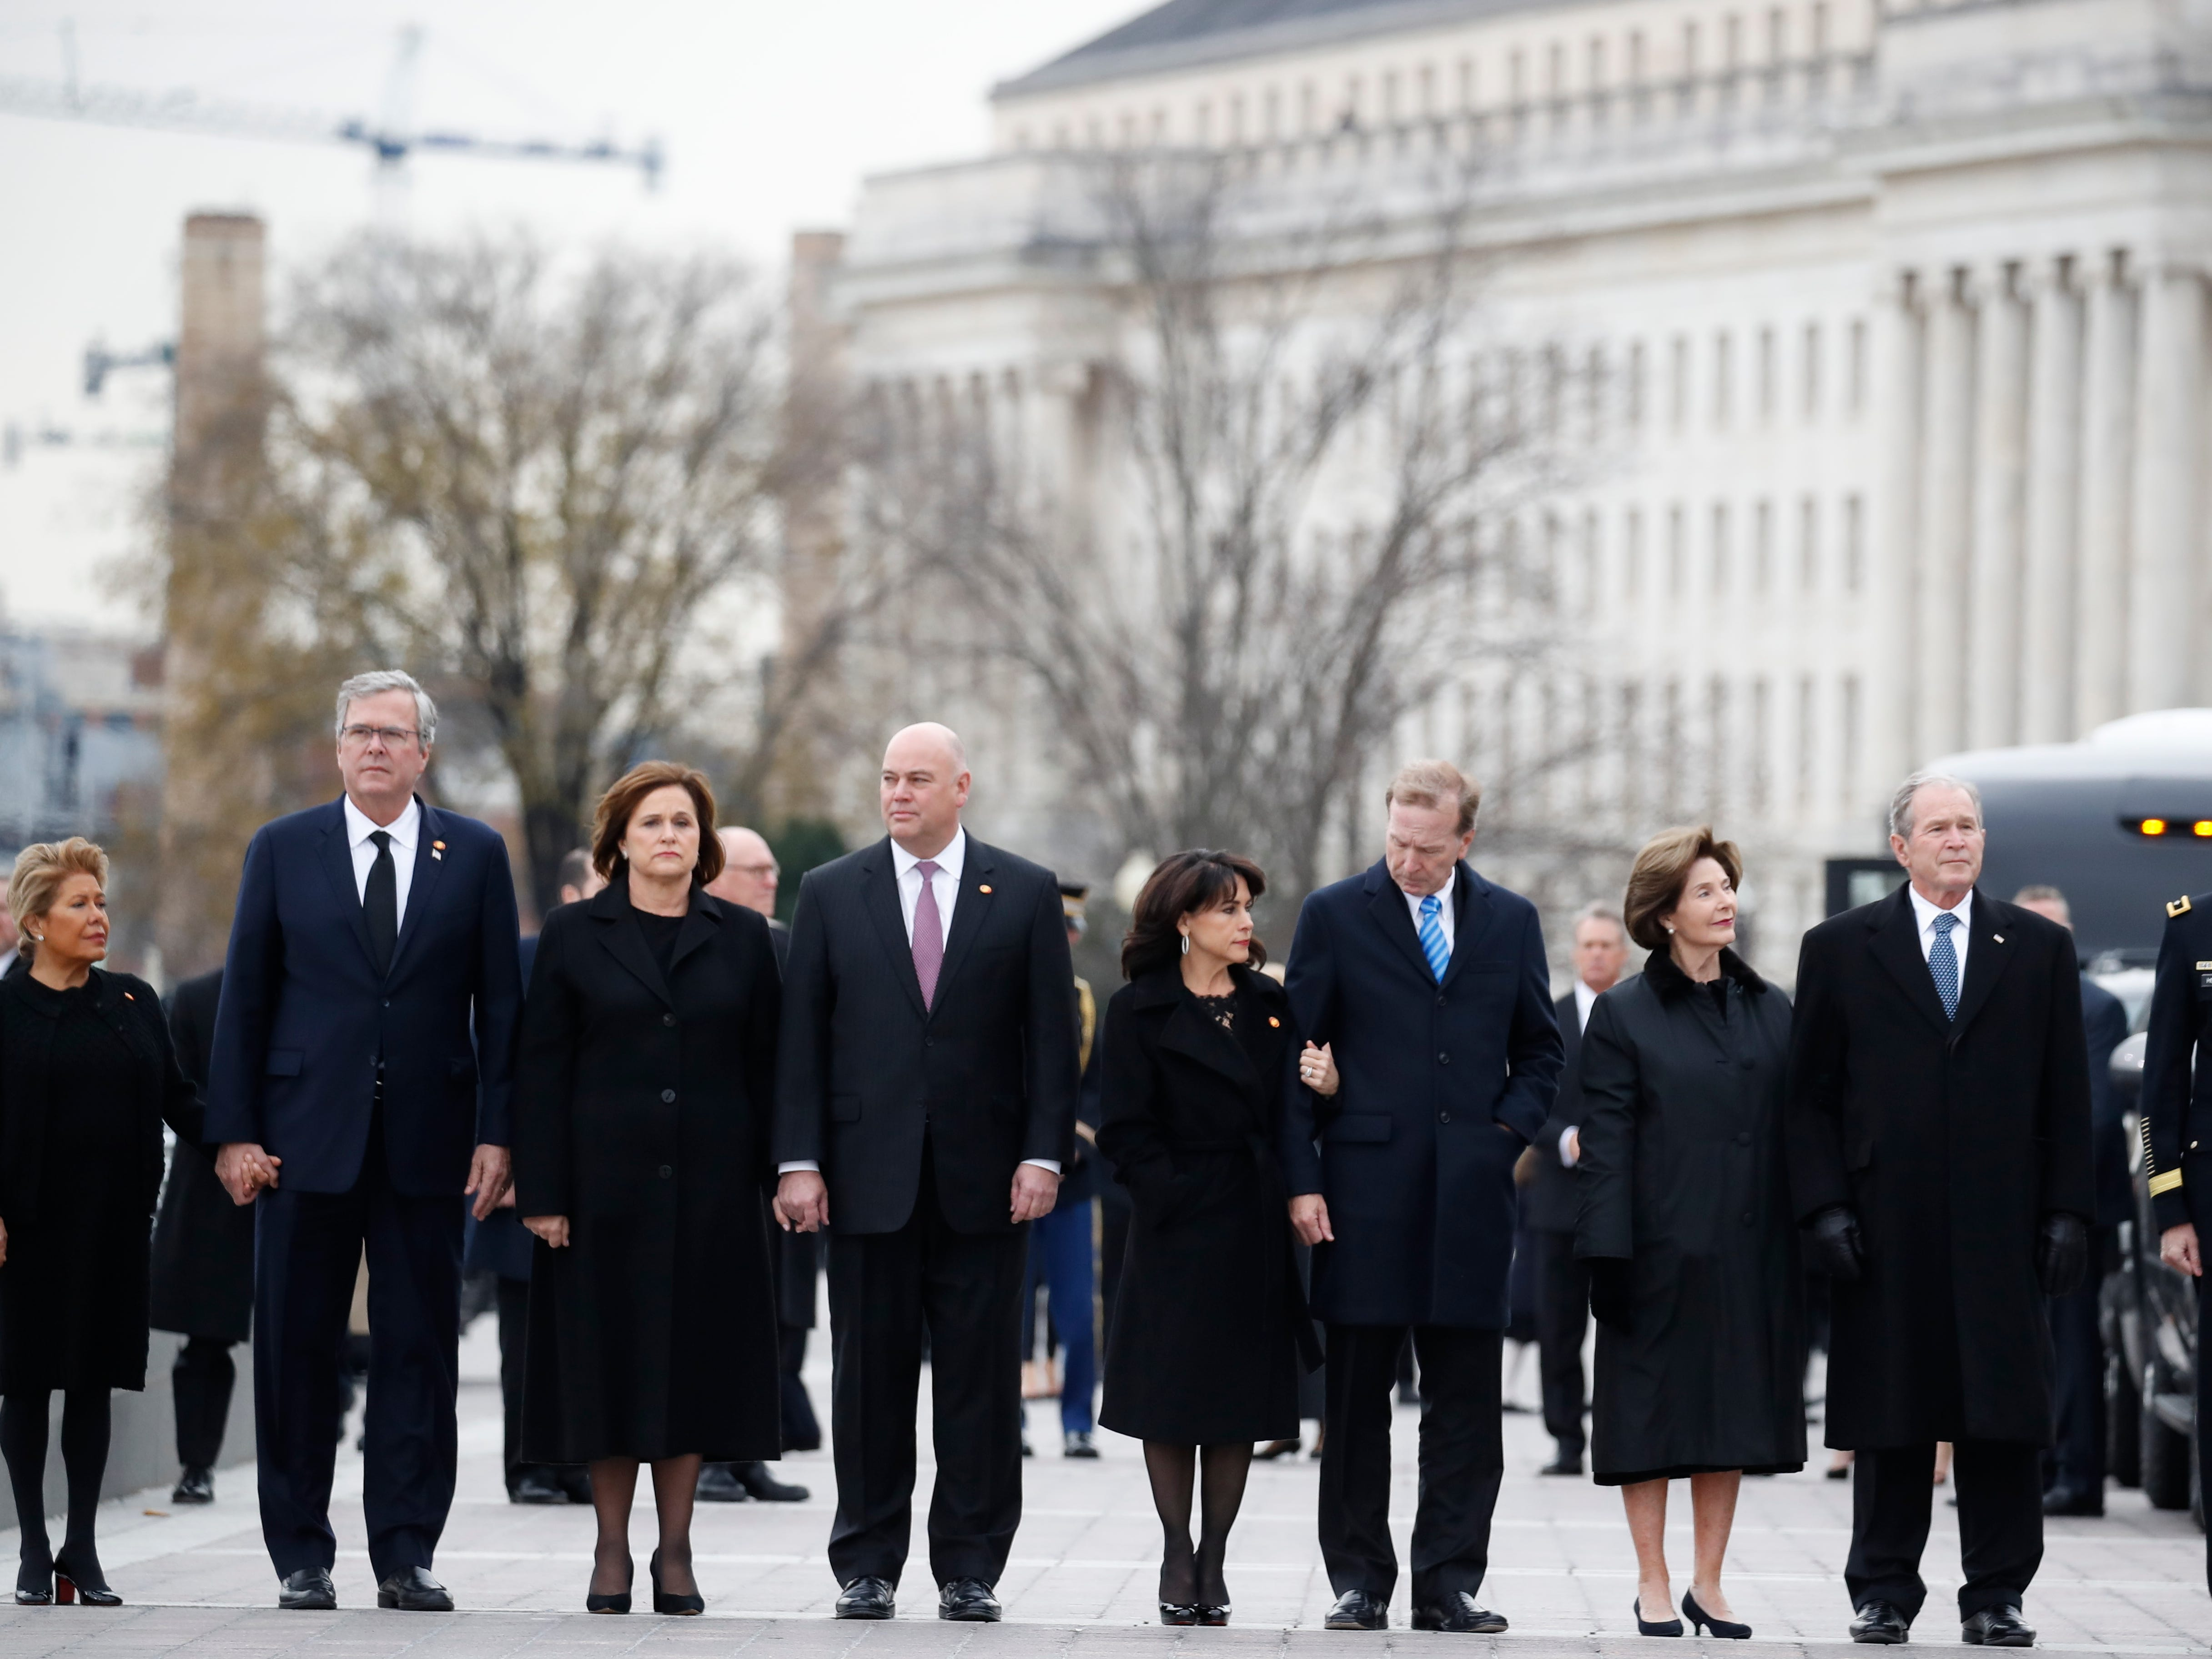 From right, former President George W. Bush, second from right, former first lady Laura Bush, Neil Bush, Sharon Bush, Bobby Koch, Doro Koch, Jeb Bush and Columba Bush, stand just prior to the flag-draped casket of former President George H.W. Bush being carried by a joint services military honor guard from the U.S. Capitol, Wednesday, Dec. 5, 2018, in Washington.